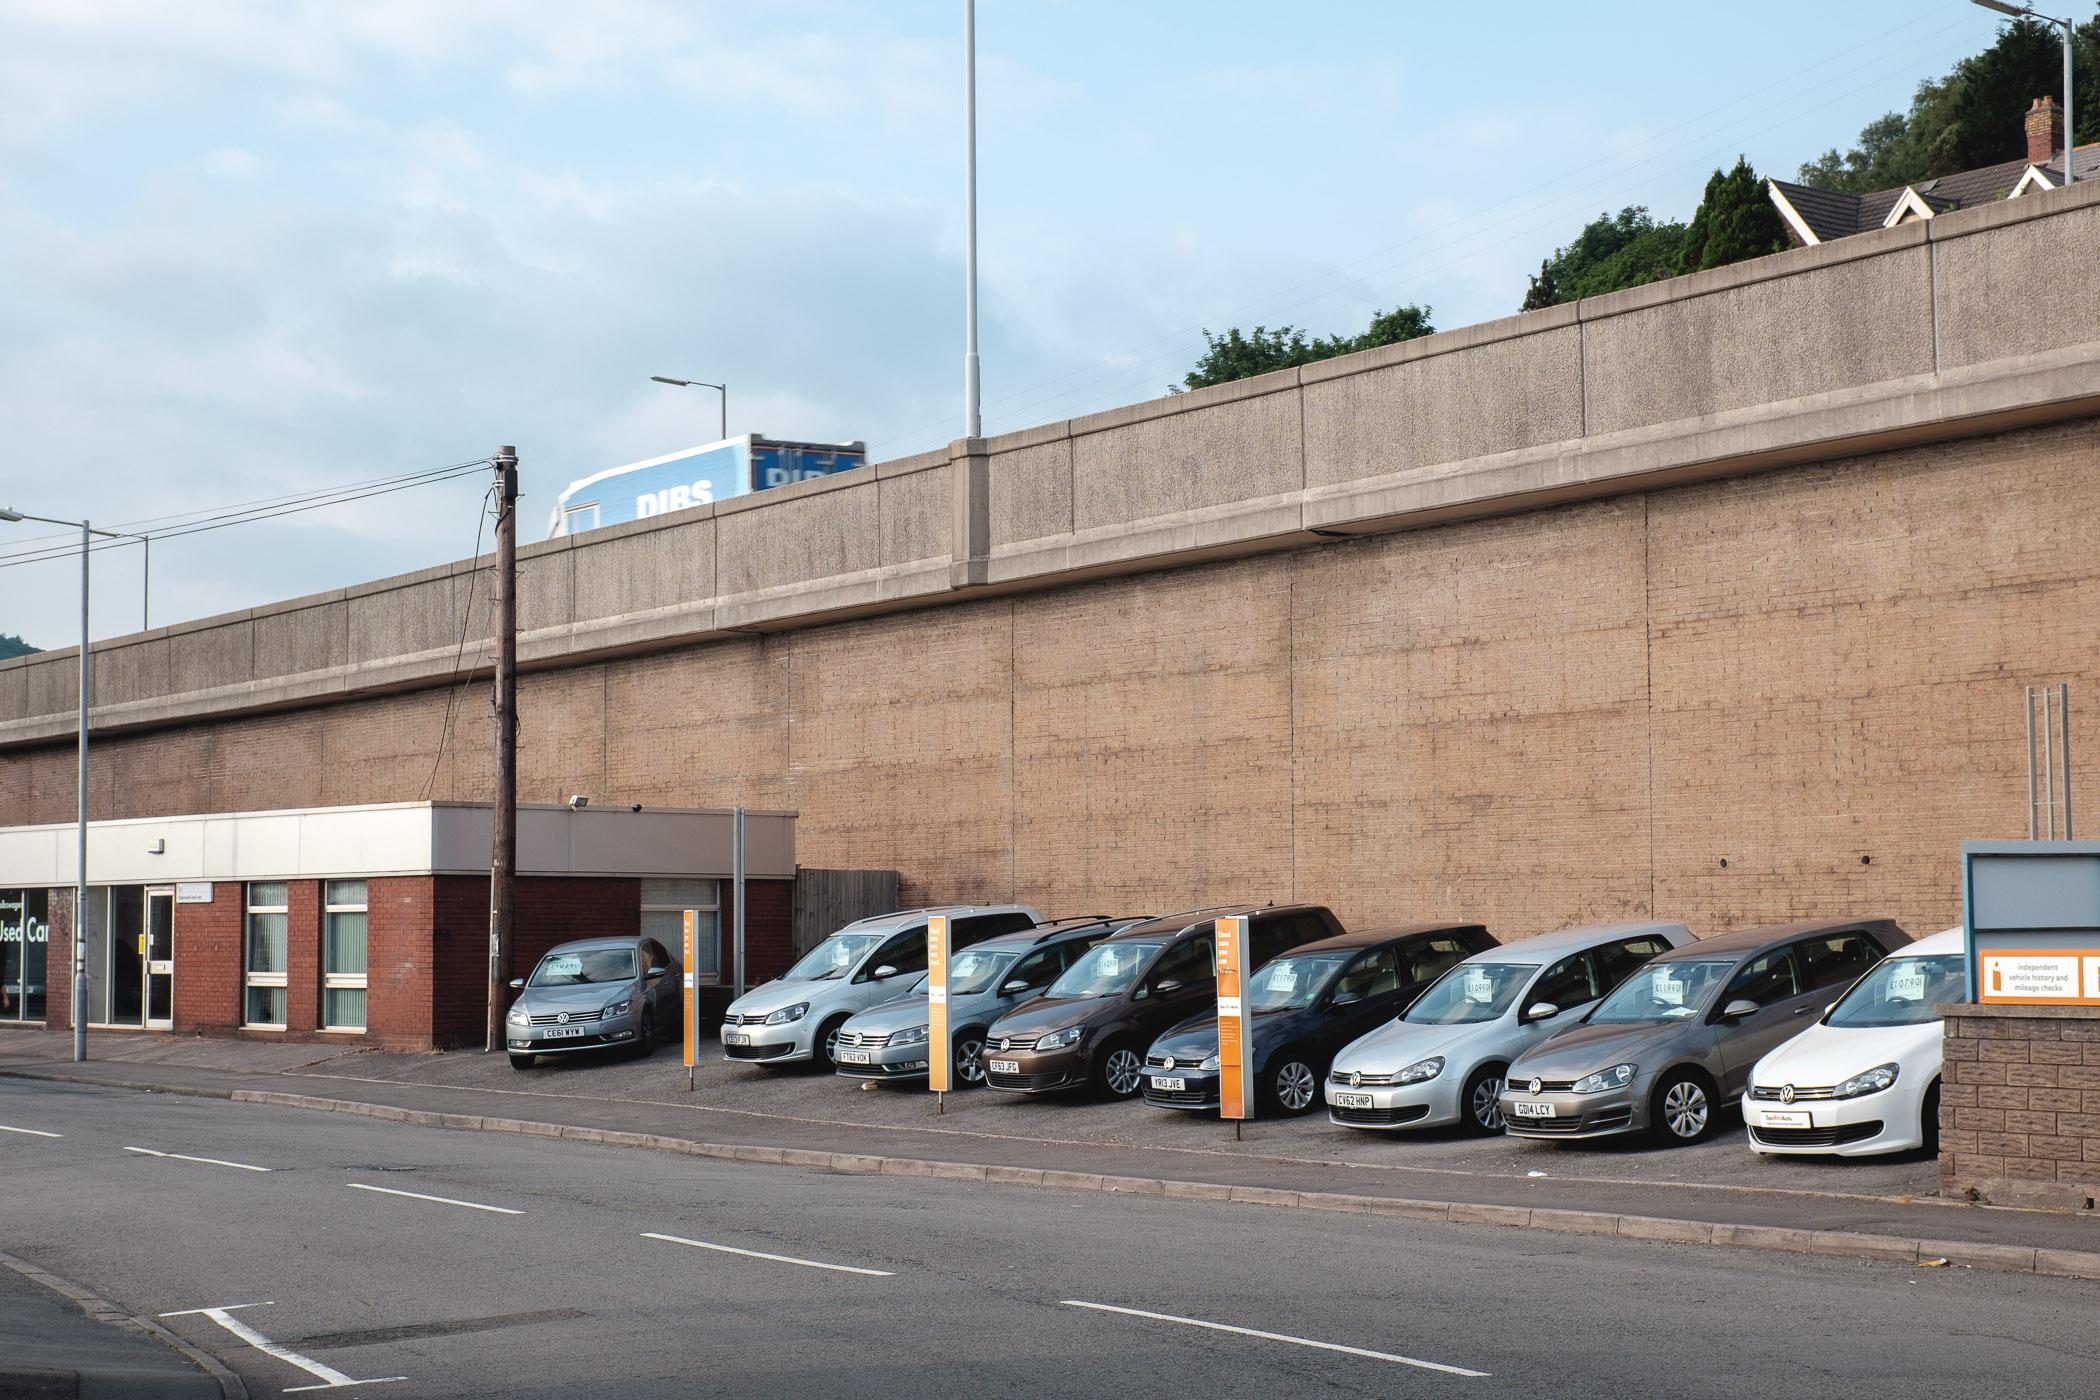 A car dealership in Port Talbot, on the site of the old Sinclair Garages. Businesses that were not demolished to make way for the motorway have had to adapt to it's often looming presence.